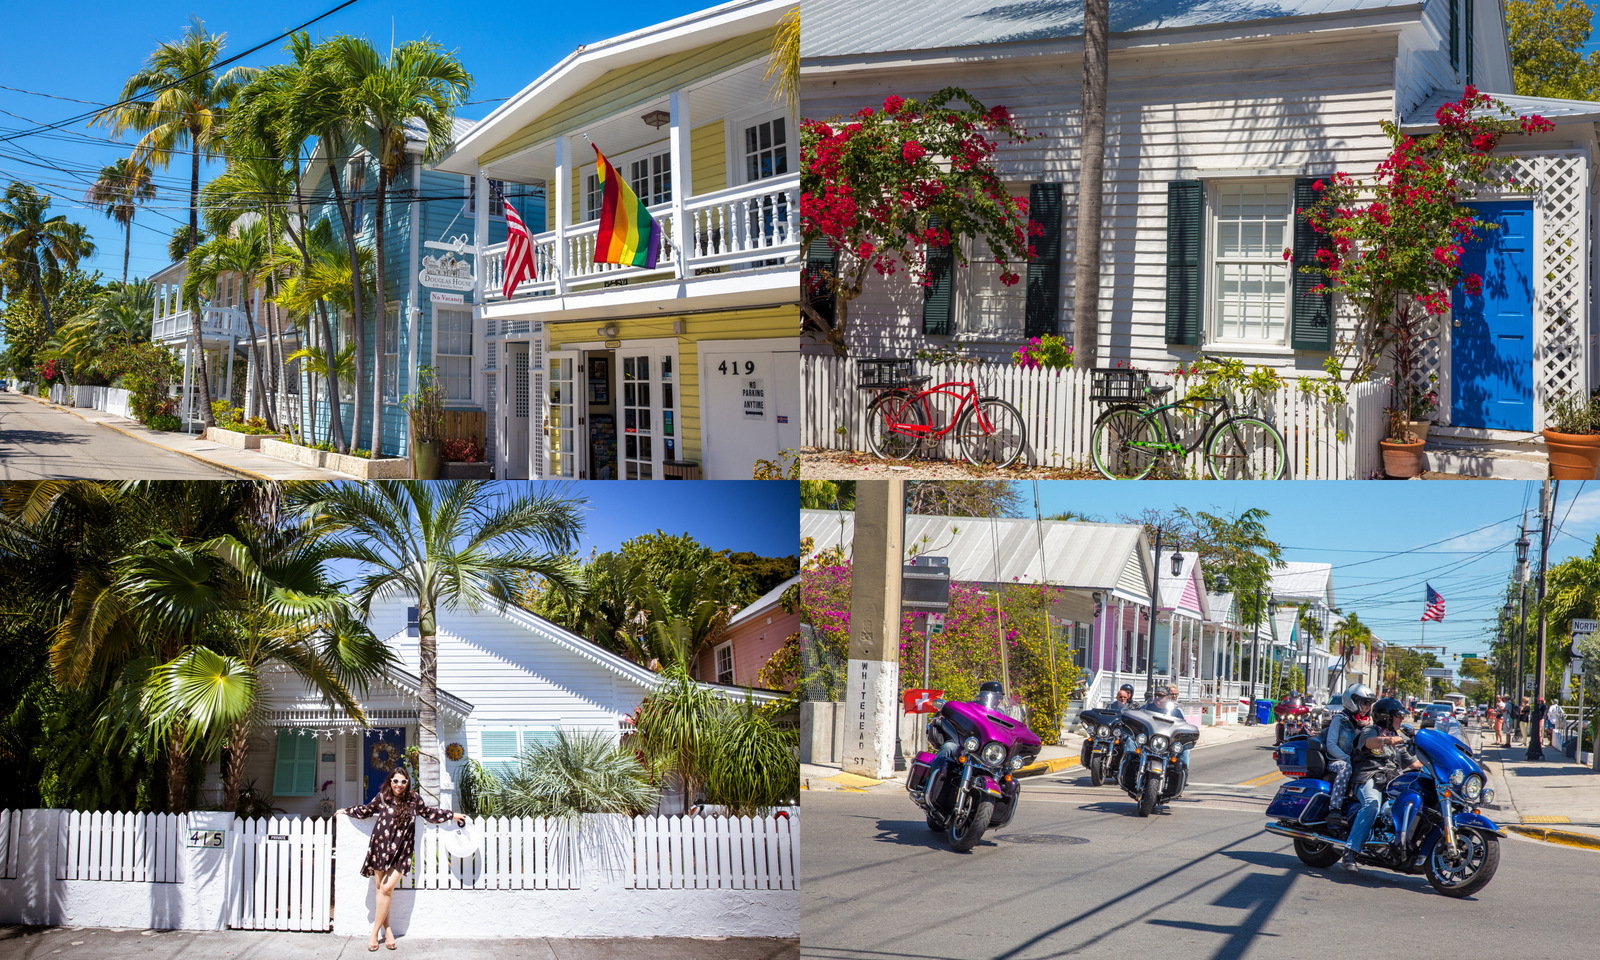 Key west, florida, travelogue, things to do in florida, keywest itinerary, travel photography, street photography, travel blog, ocean drive, duval street, key west food tour